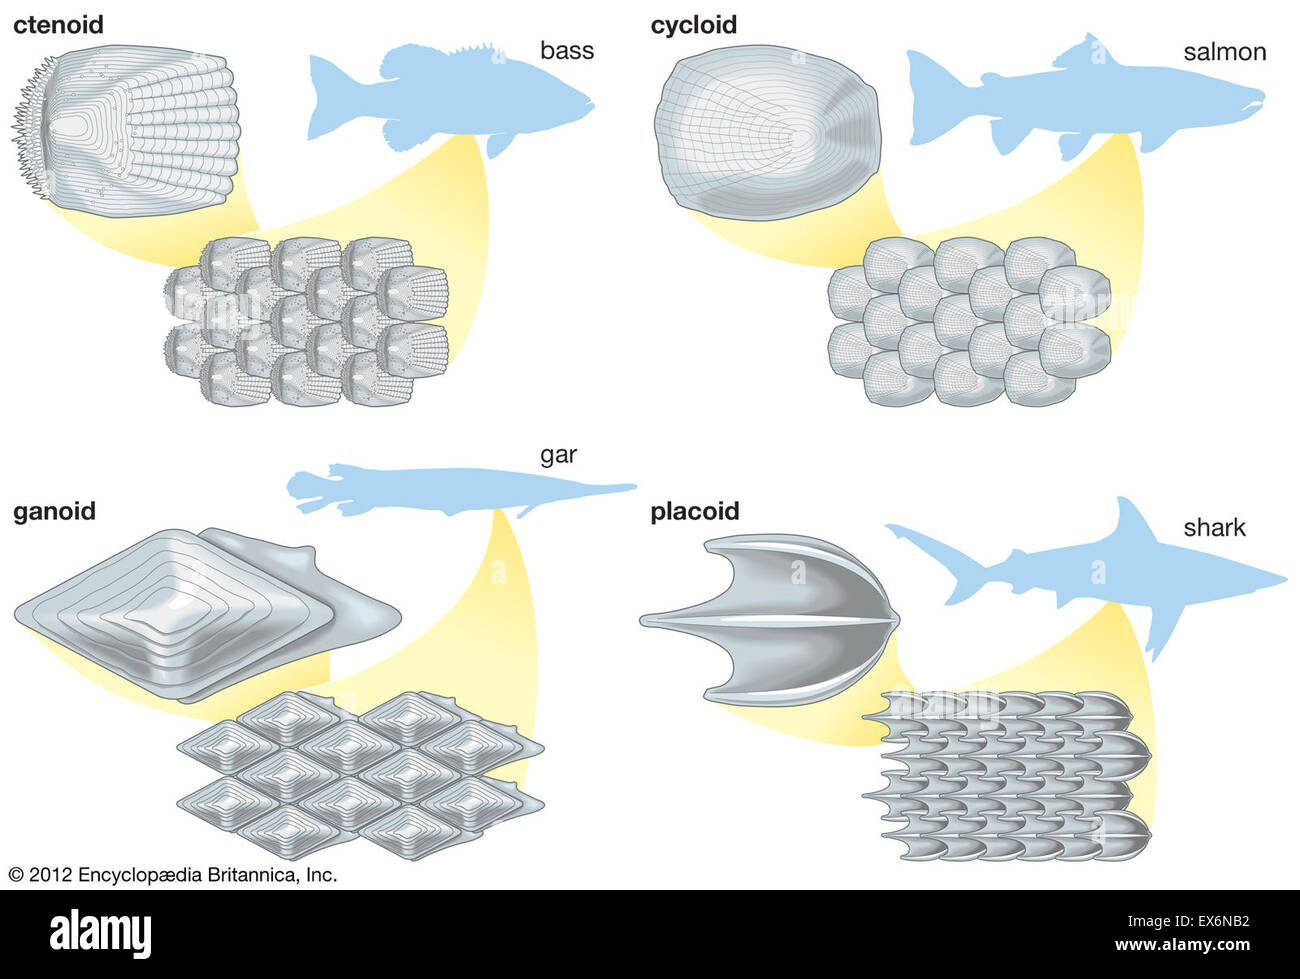 Types of fish scales stock photo royalty free image for Do all fish have scales